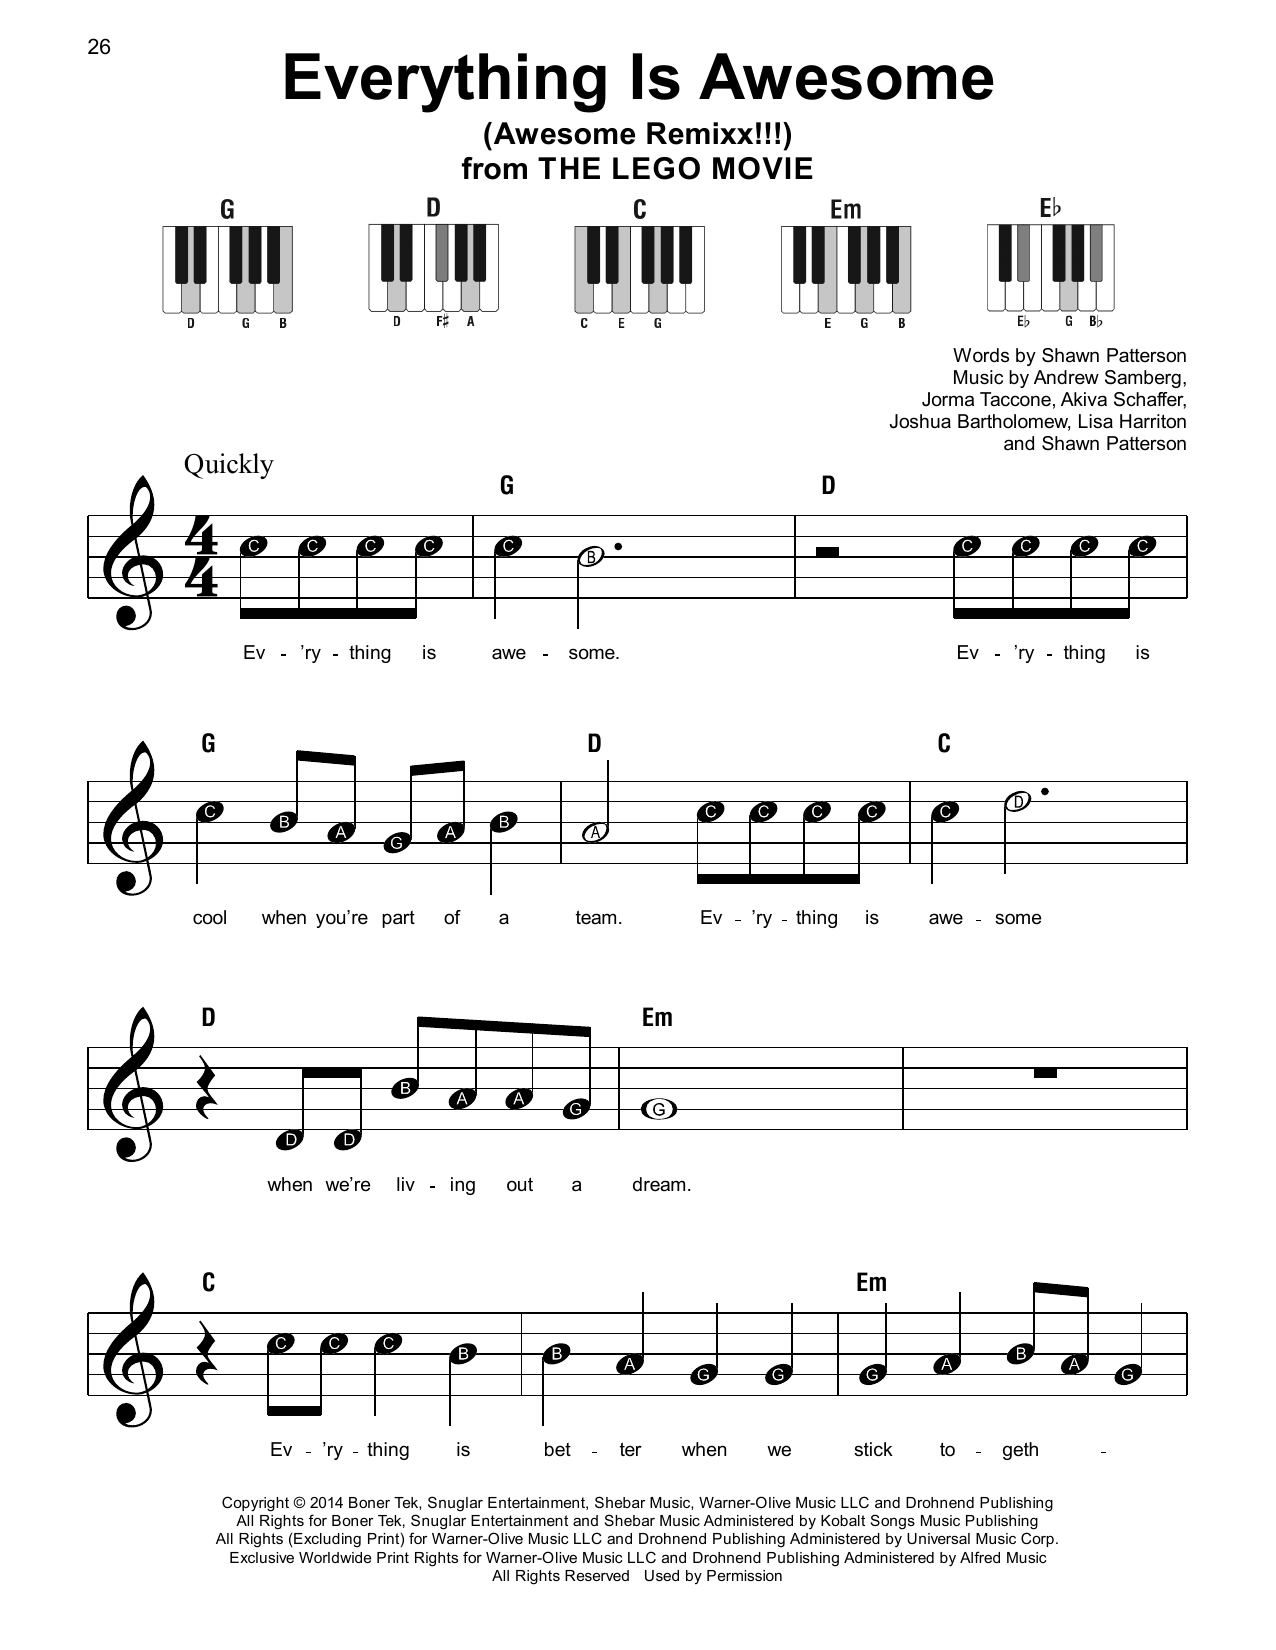 Everything Is Awesome (from The Lego Movie) (feat. The Lonely Island) Sheet Music